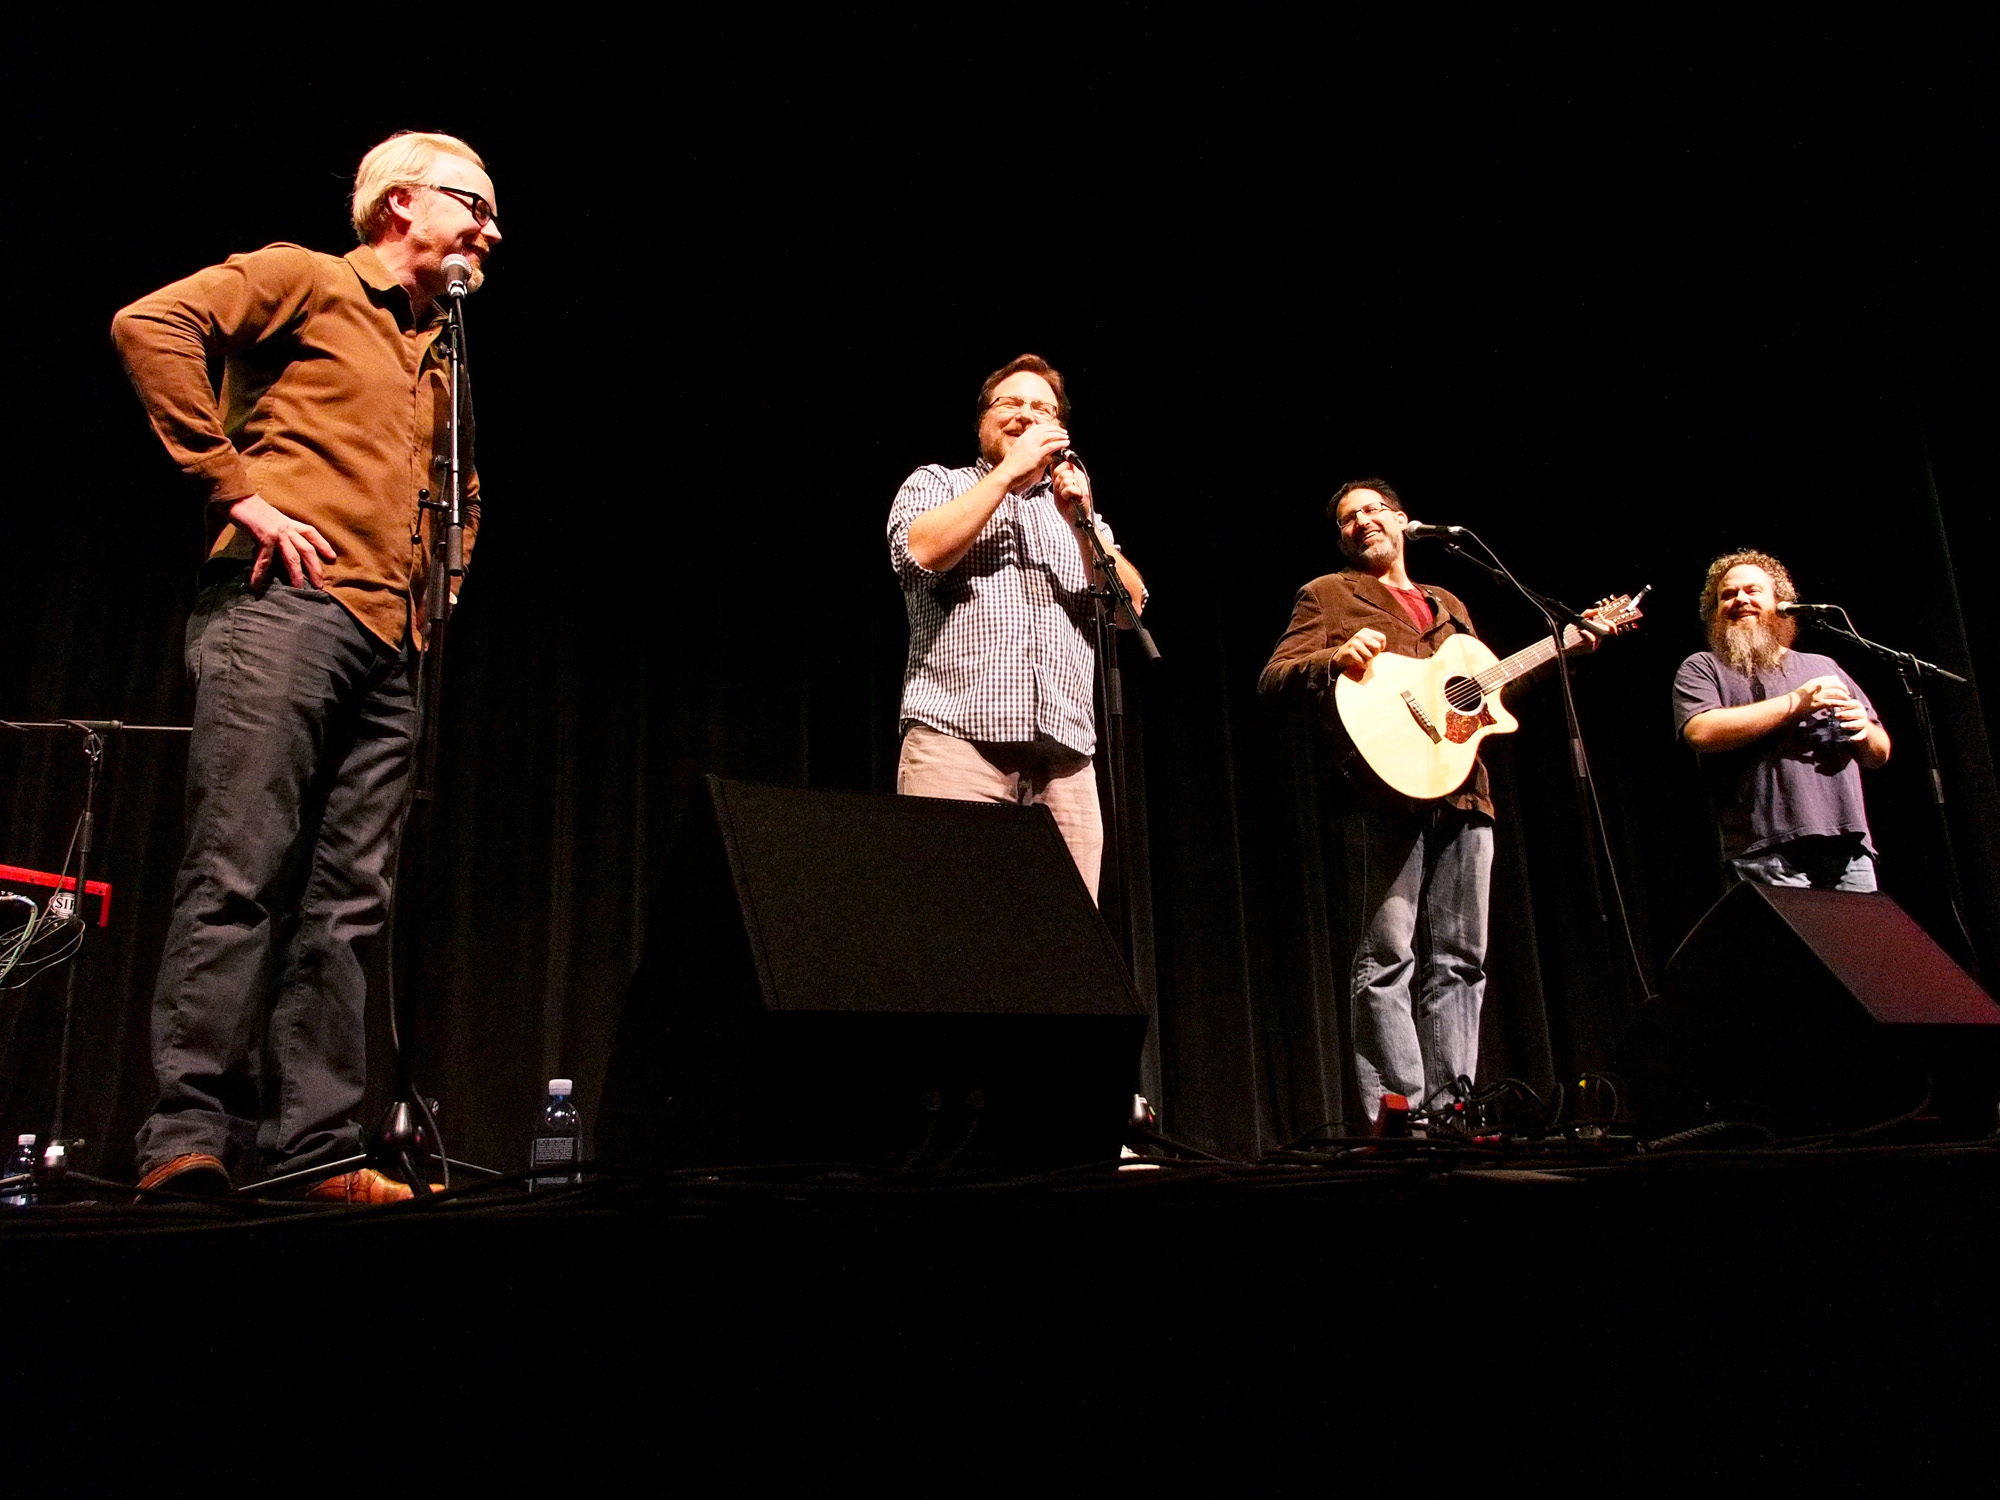 Captains-Wifes-Lament-w00tstock-fn-2014-thumati.jpg